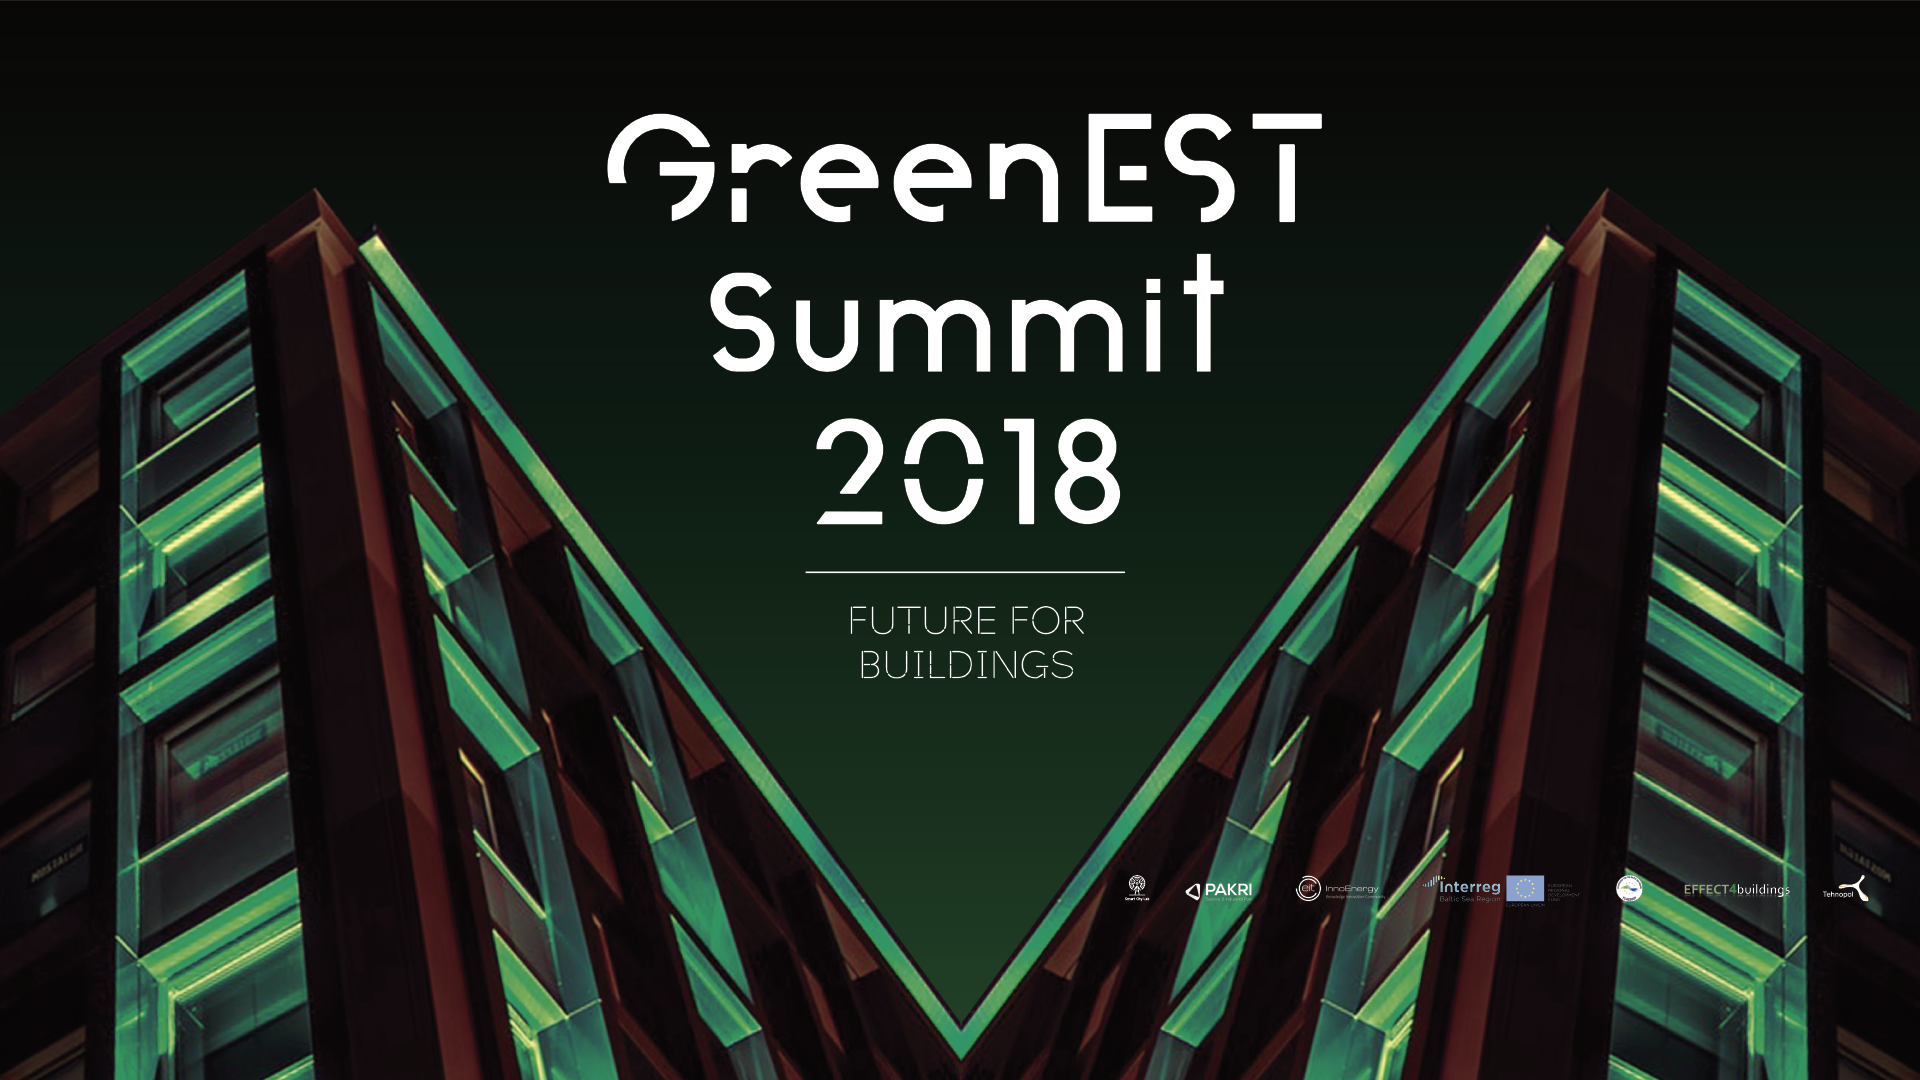 GreenEST Summit 2018: Future for Buildings on the 30th of October!